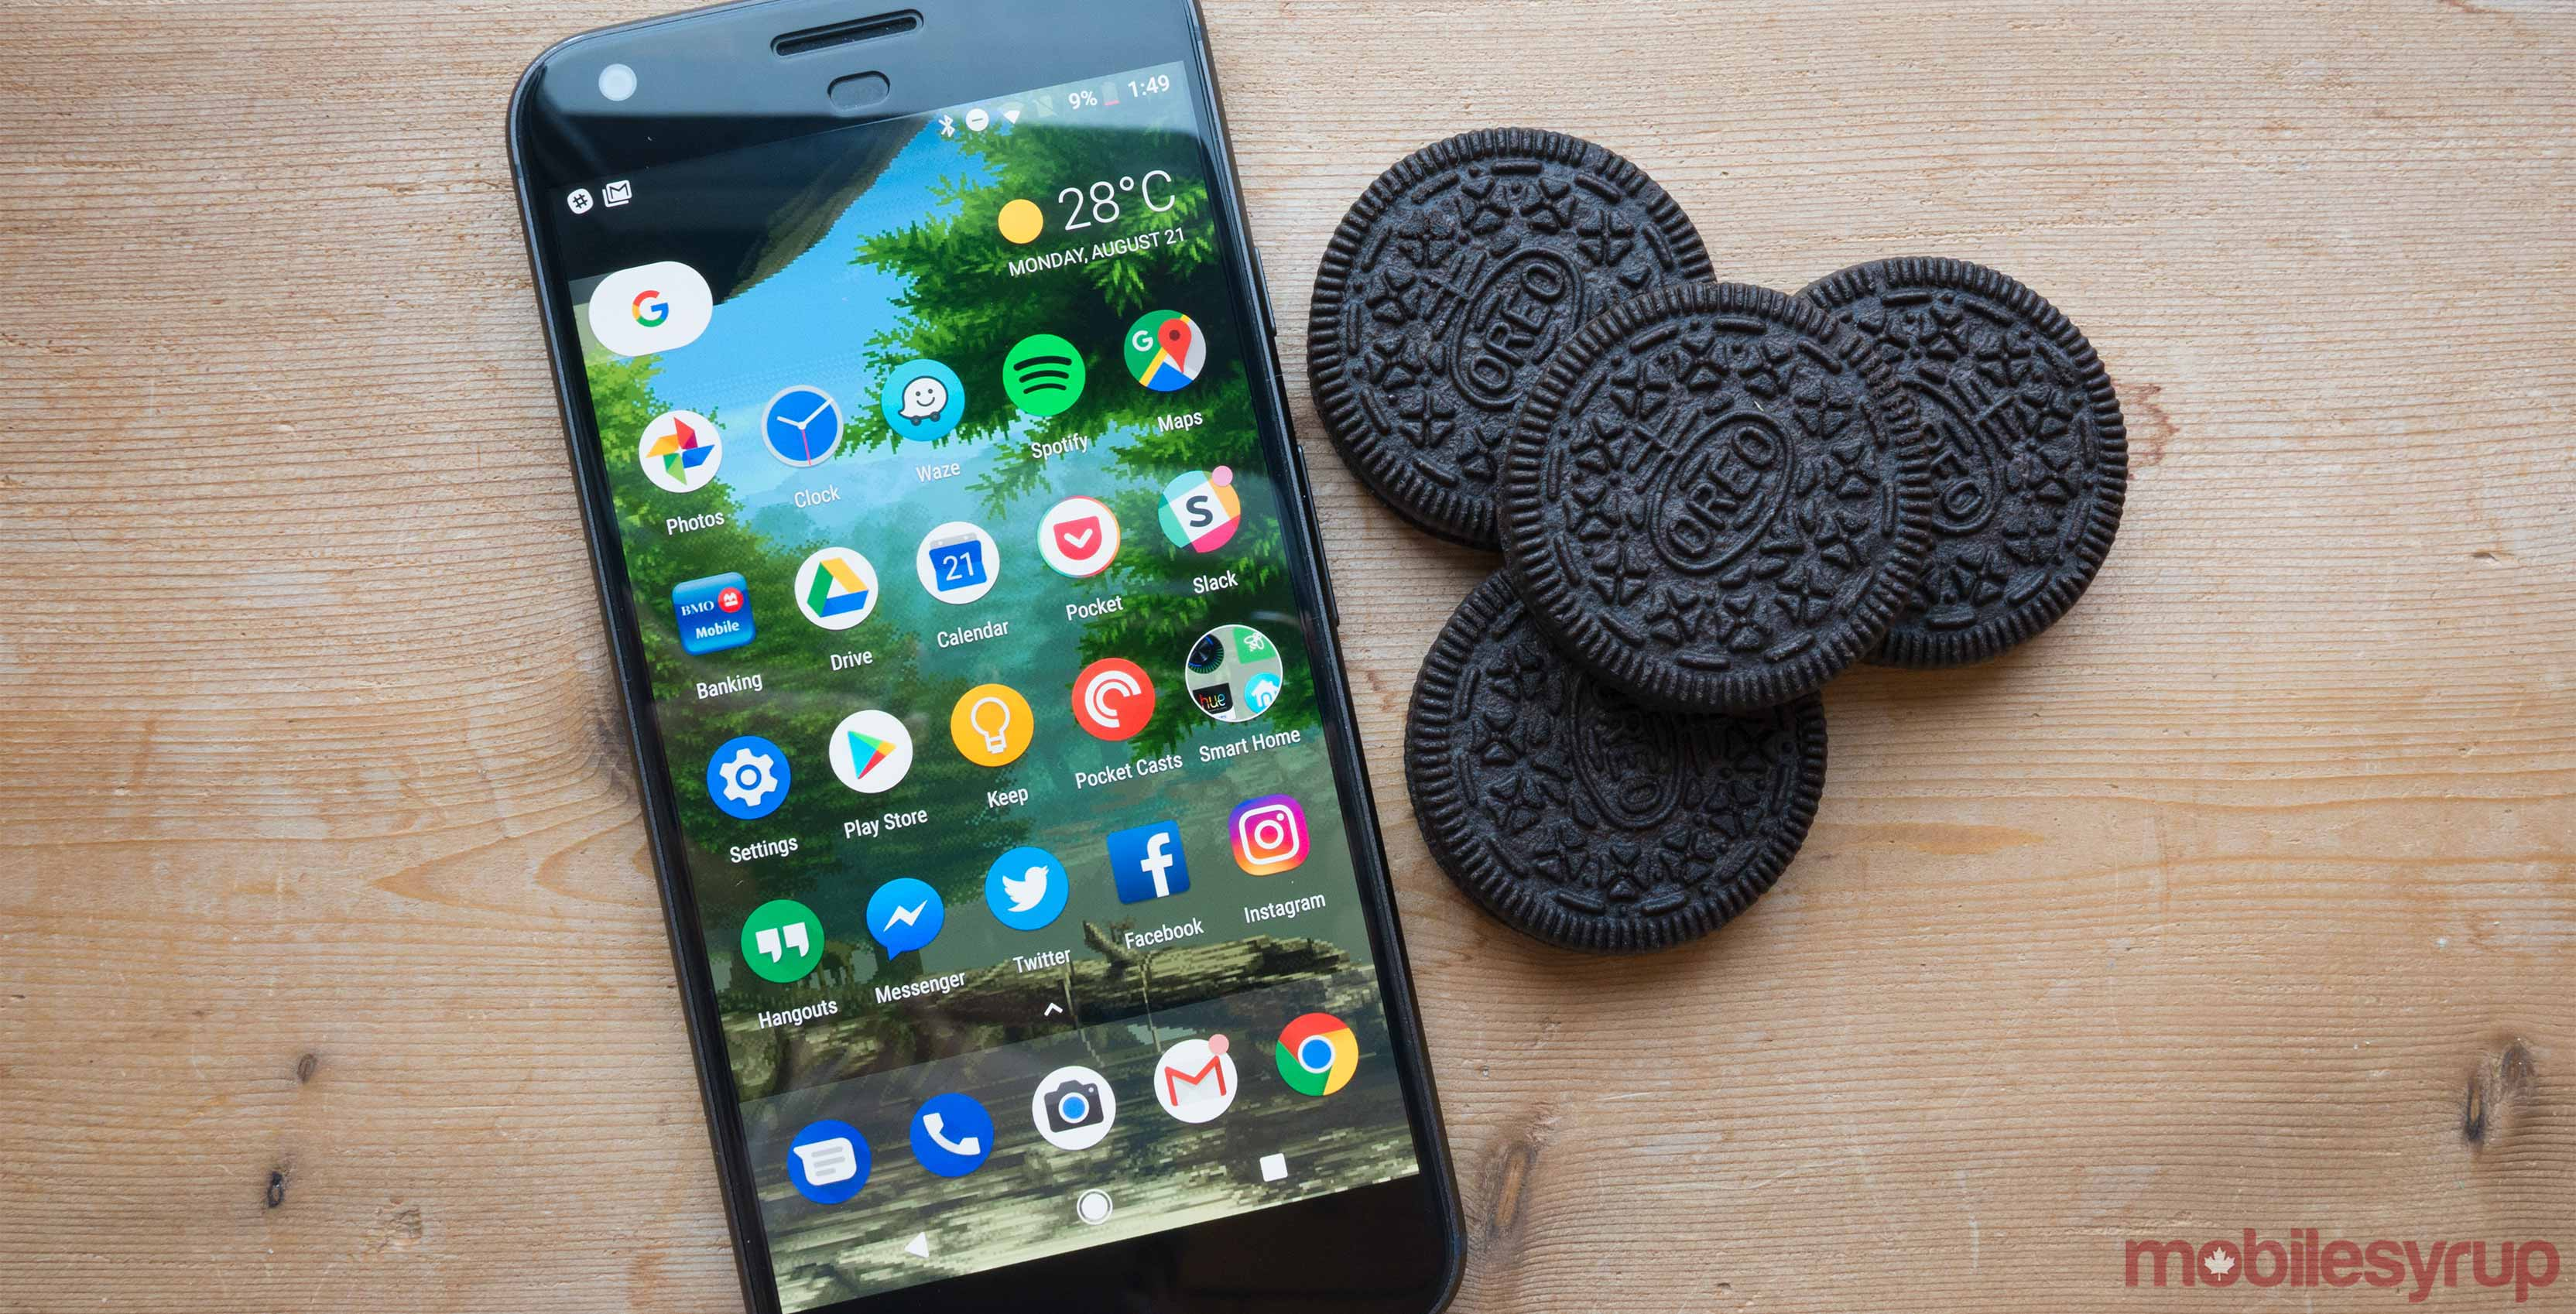 Android phone with Oreo cookies